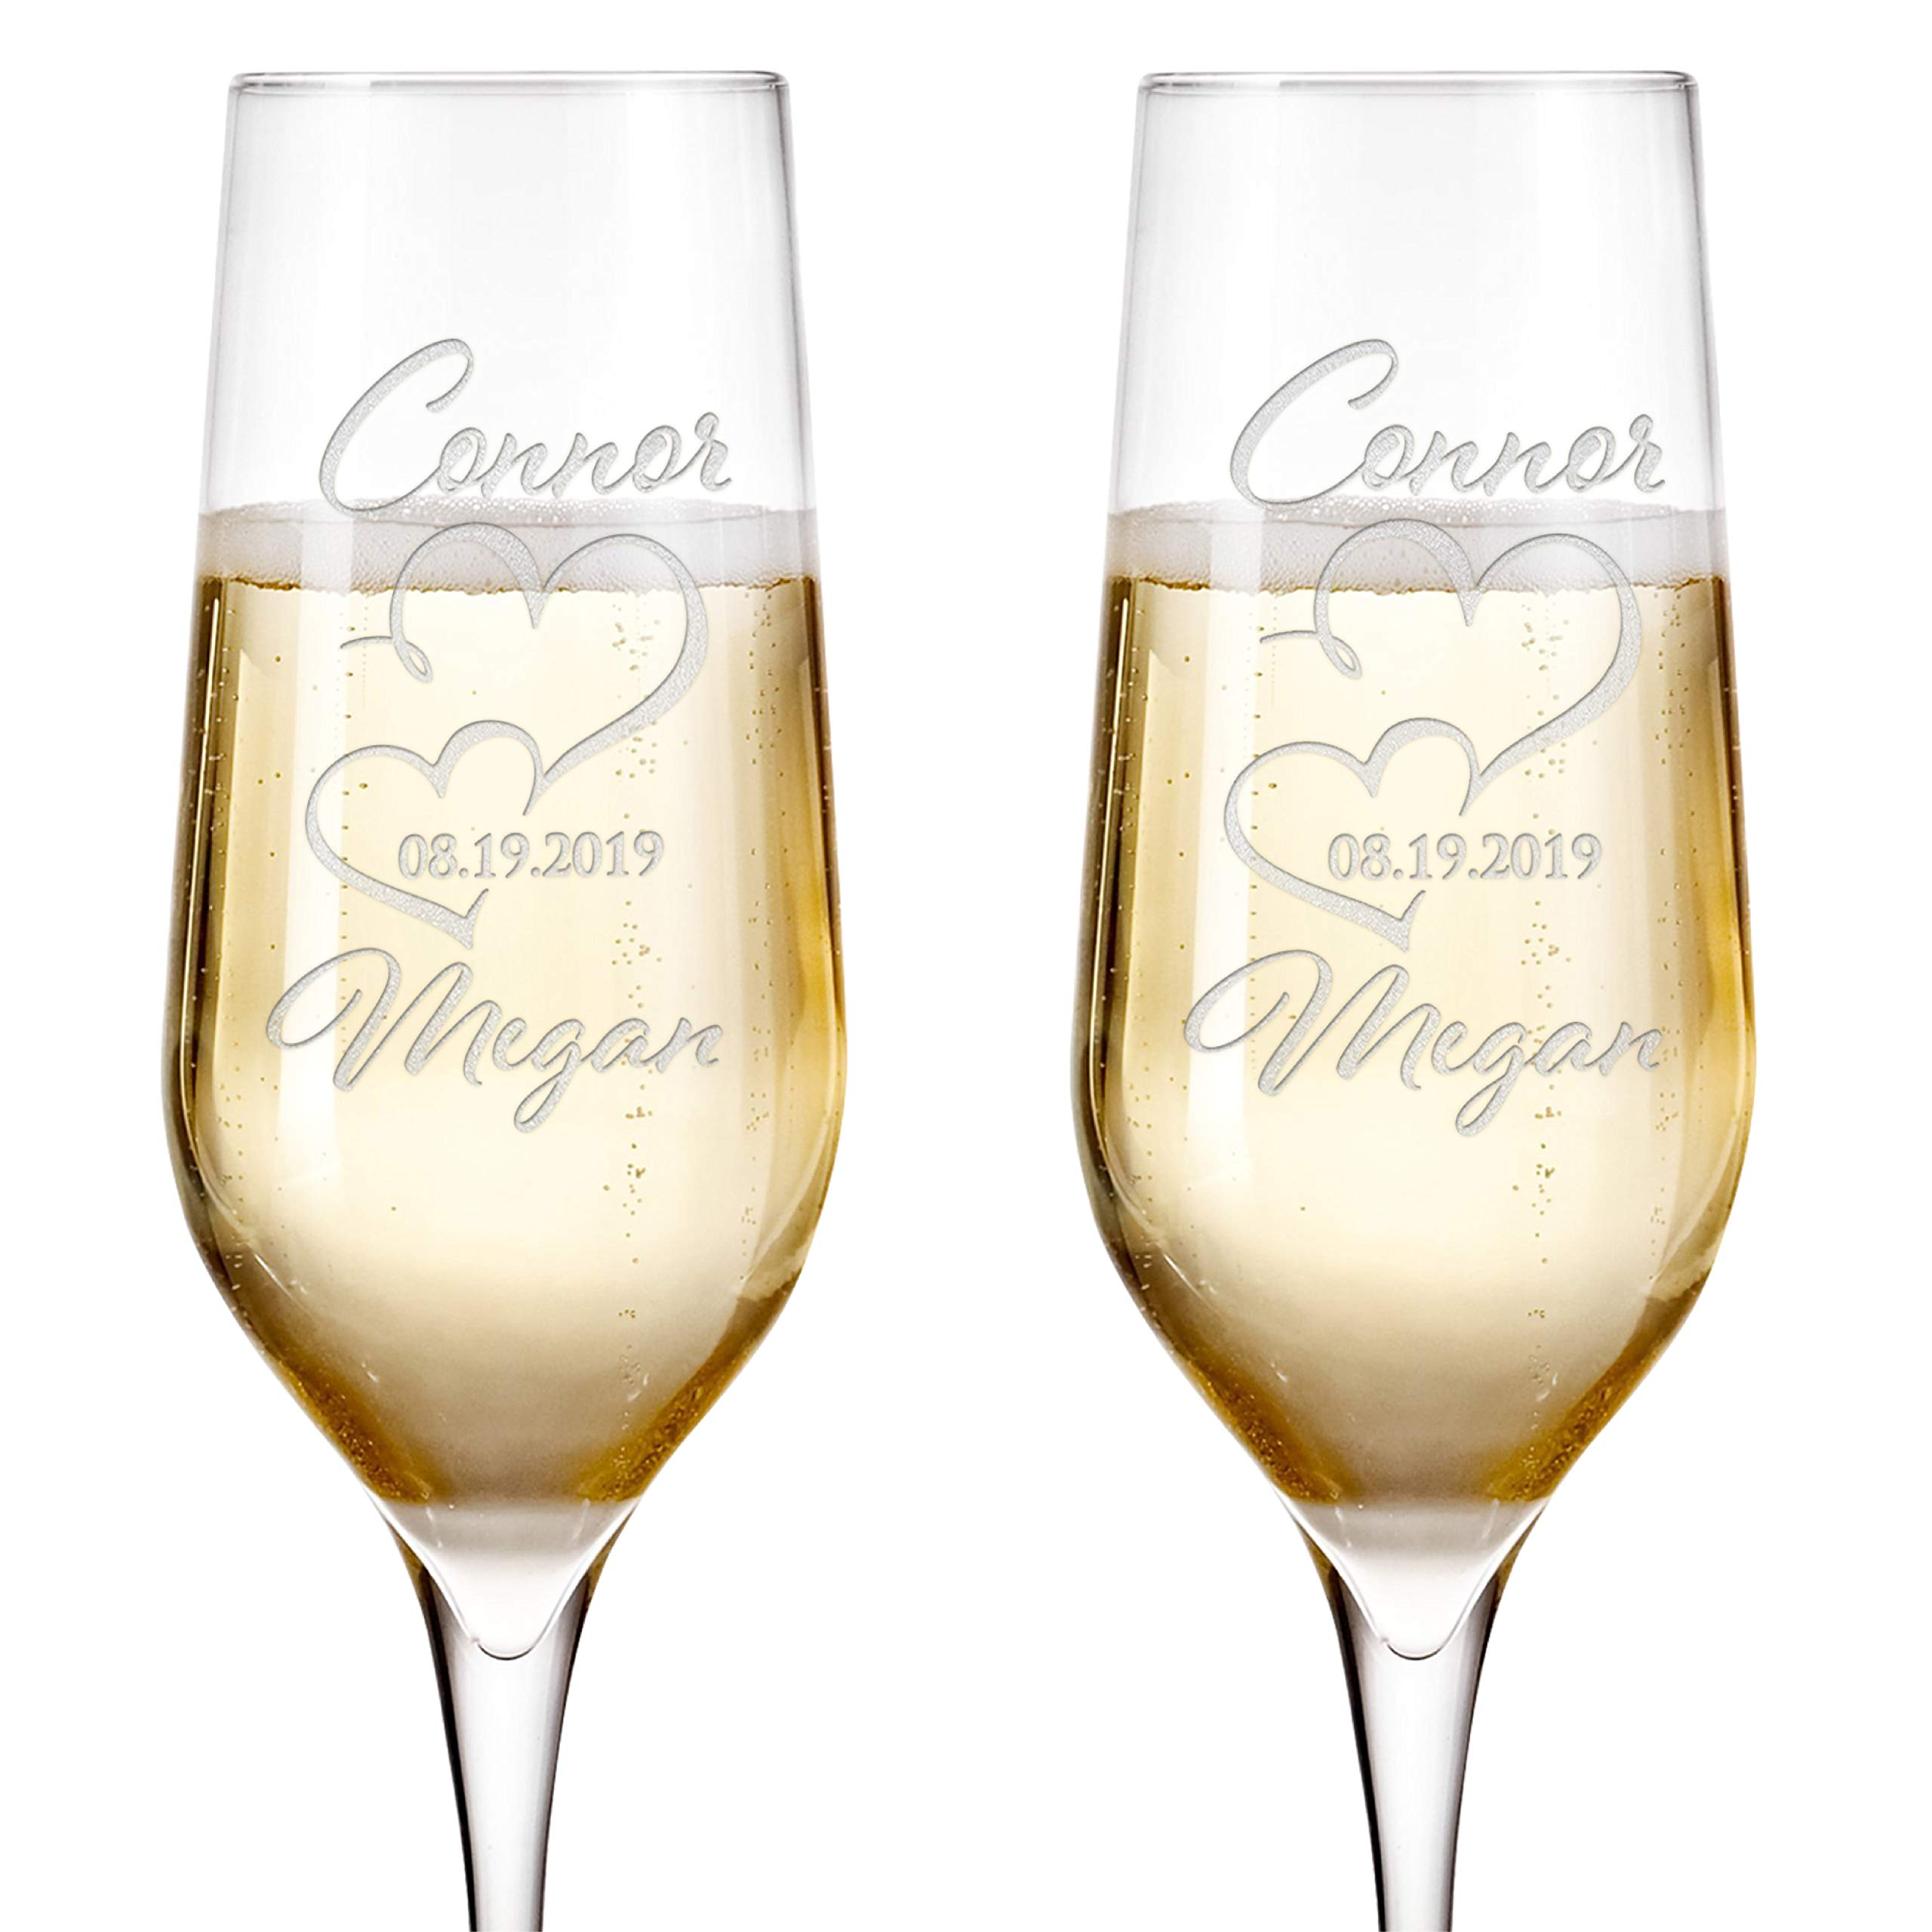 Set Of 2 Personalized Mr Mrs Wedding Champagne Flutes Bride And Groom Champagne Glasses W Last Name And Date Custom Engraved Mr And Mrs Champagne Glass Wedding Toasting Glasses 9